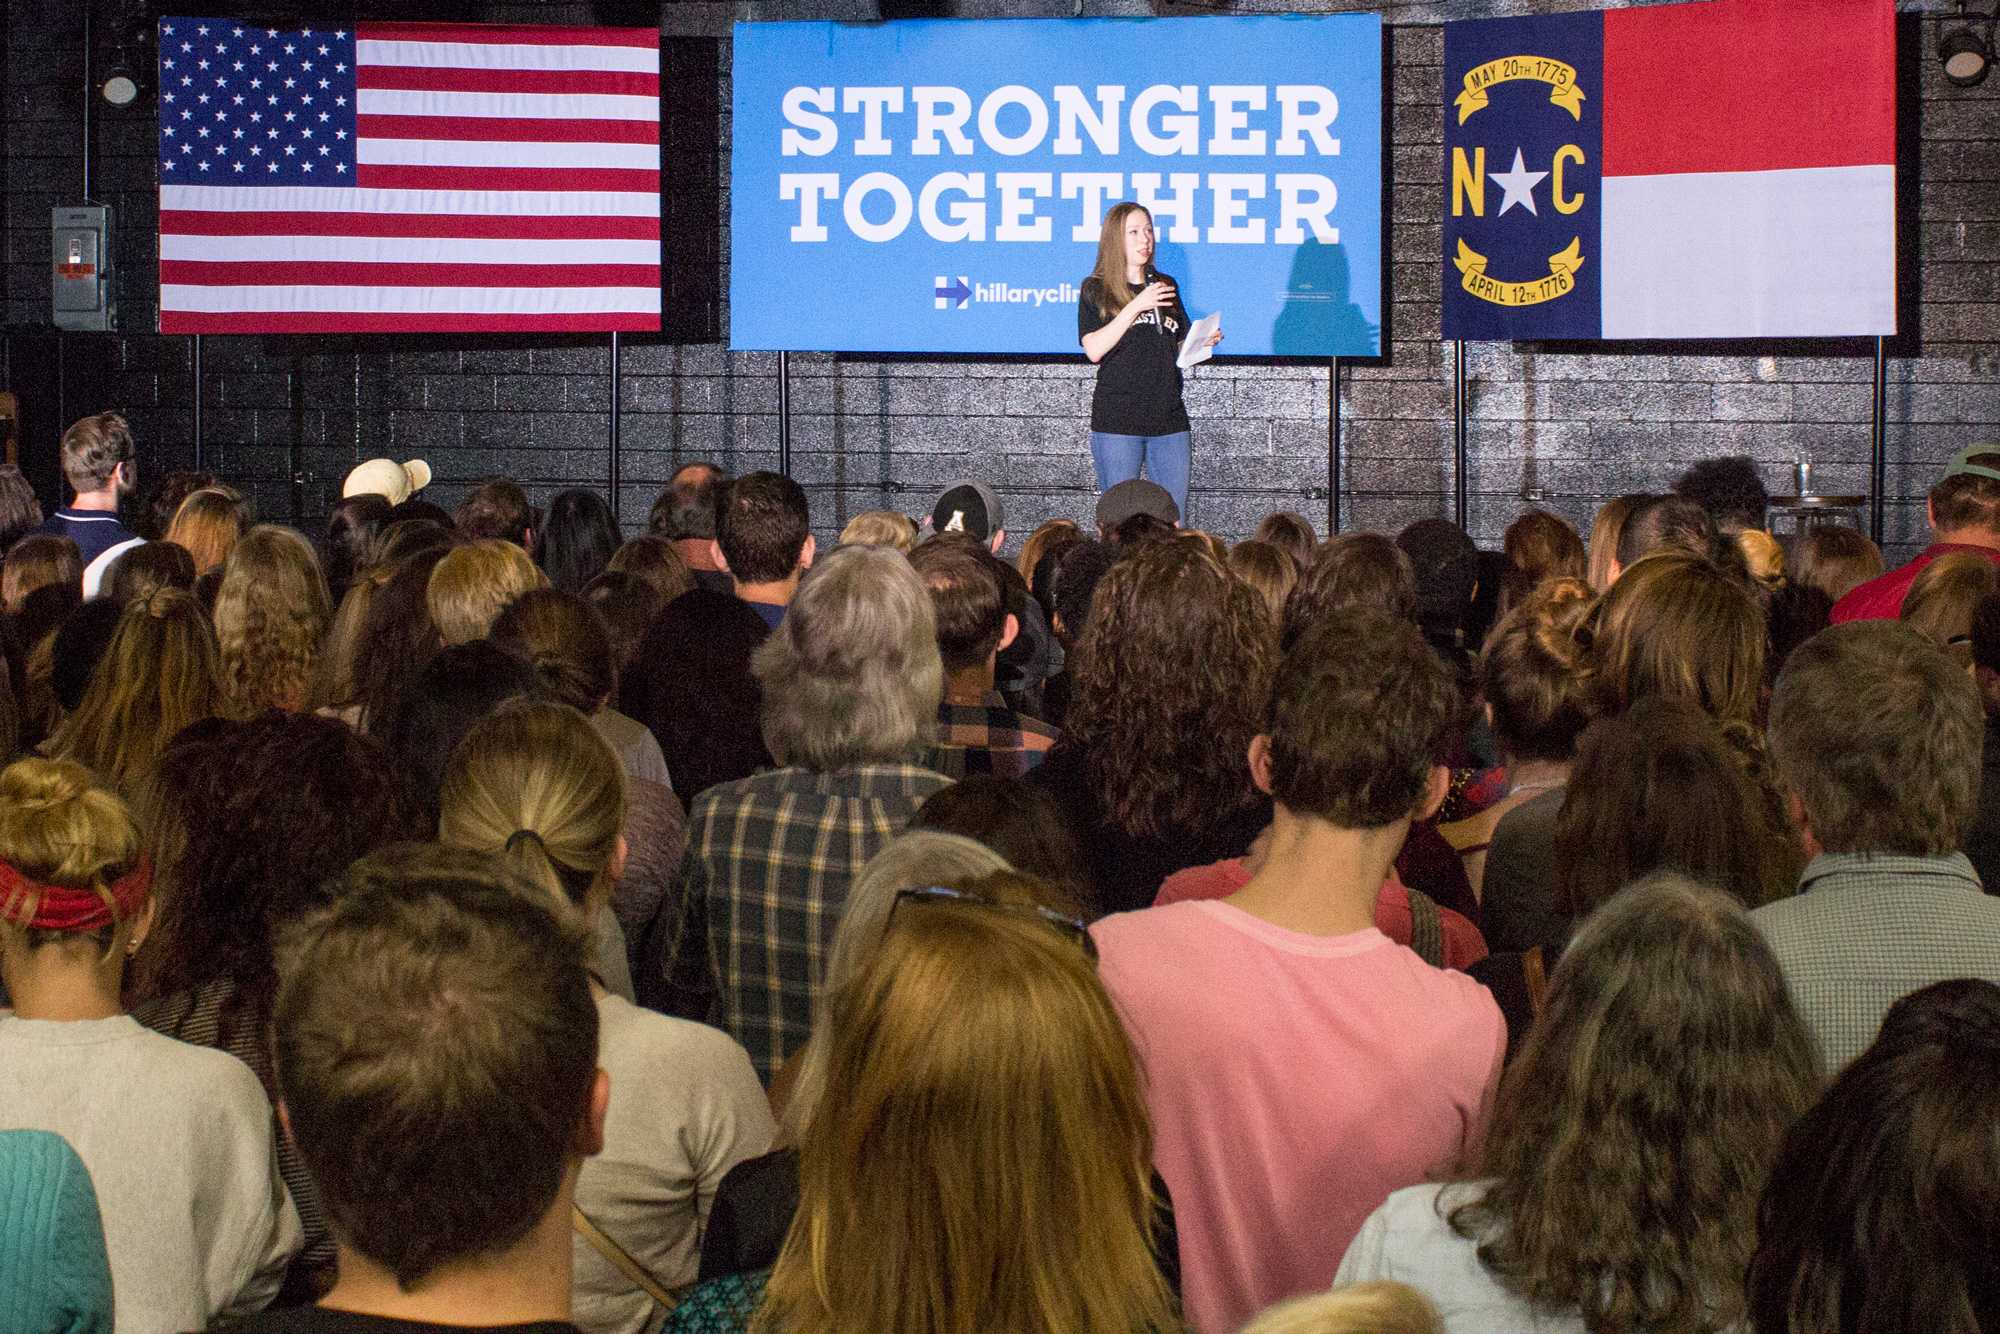 The daughter of Hillary Clinton, Chelsea Clinton, talks about her mom's campaign and answers audience questions. Mrs. Clinton came to Legends on Thursday, October 27th in order to persuade people to go out and vote early. 550 people in total came out to the rally.